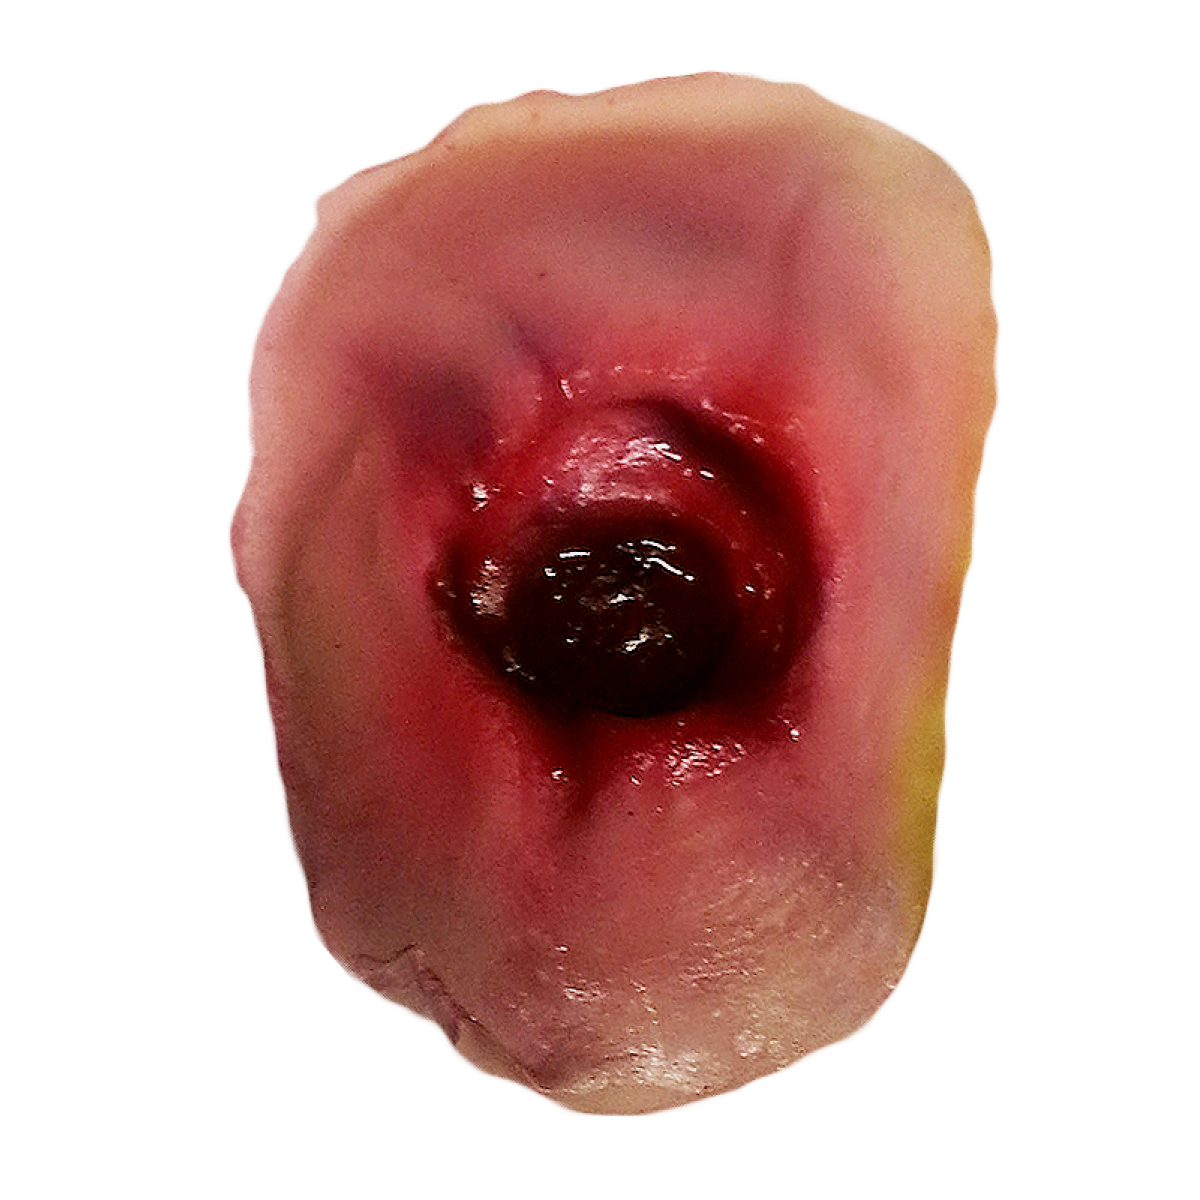 Blood hole png. Bullet wound prosthetic sfx